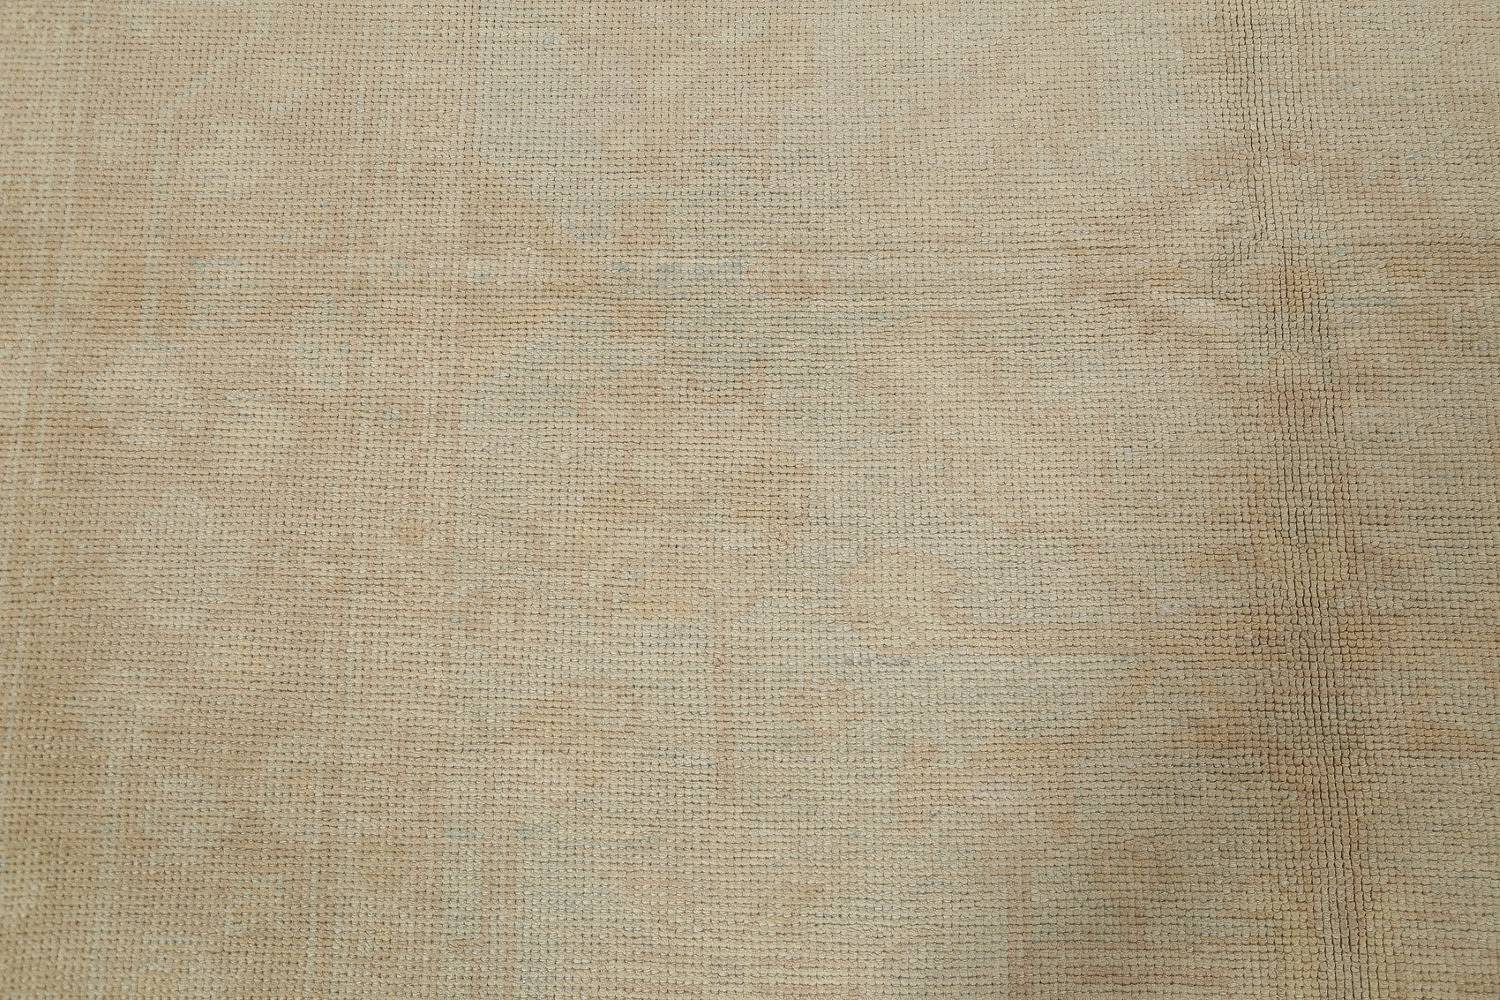 Vegetable Dye Muted Pale Blue Oushak Turkish Hand-Knotted Runner Rug 7x17 image 10